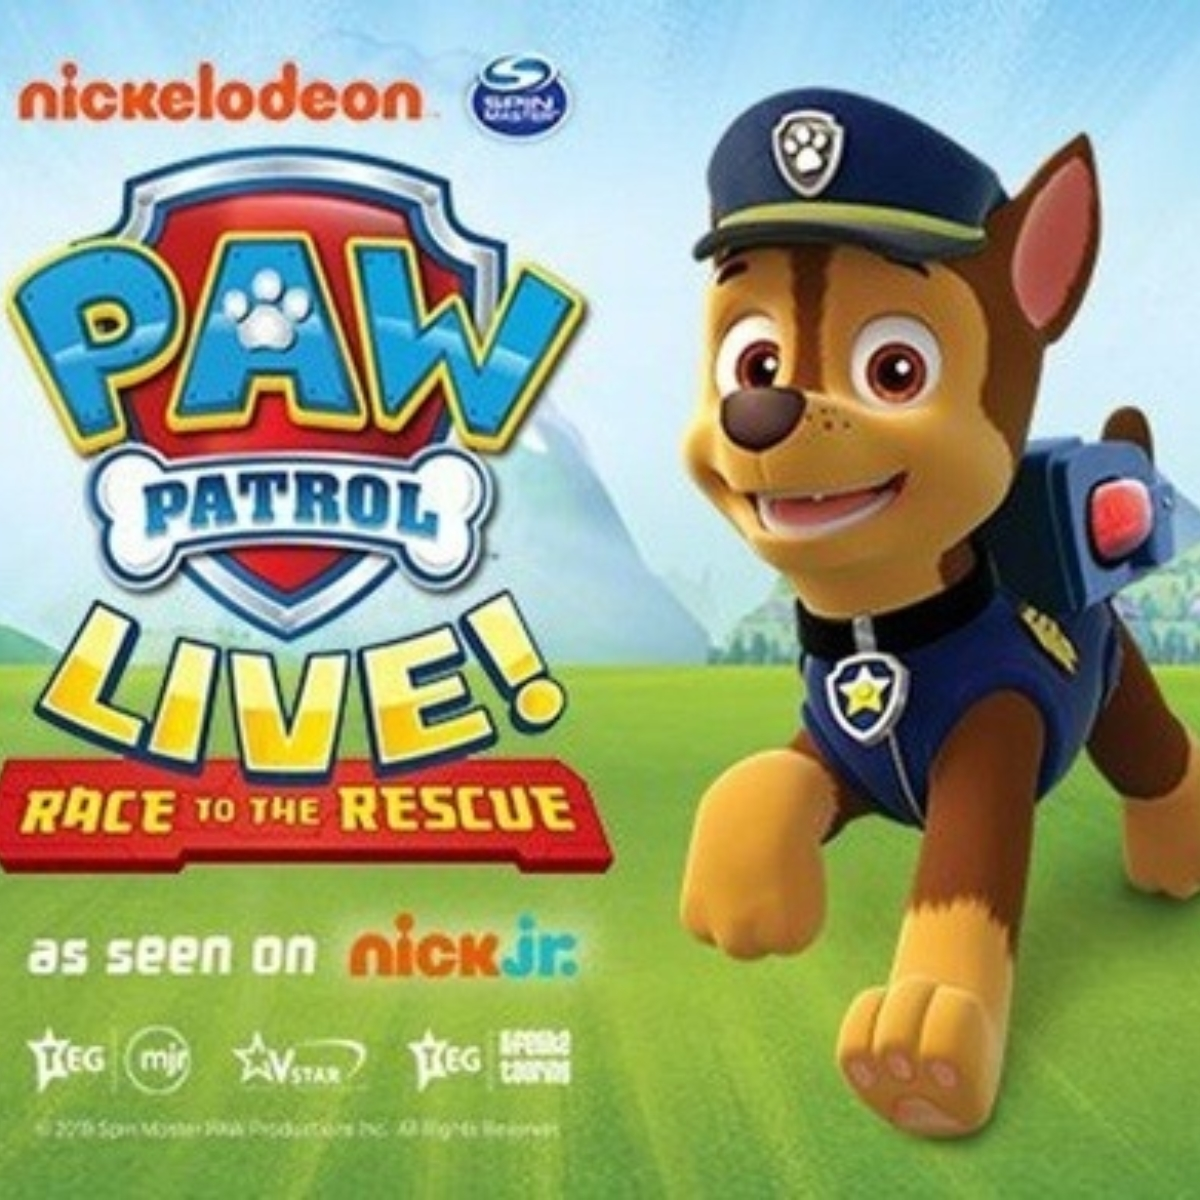 PAW PATROL LIVE! - Race to the Rescue (Birmingham) Images